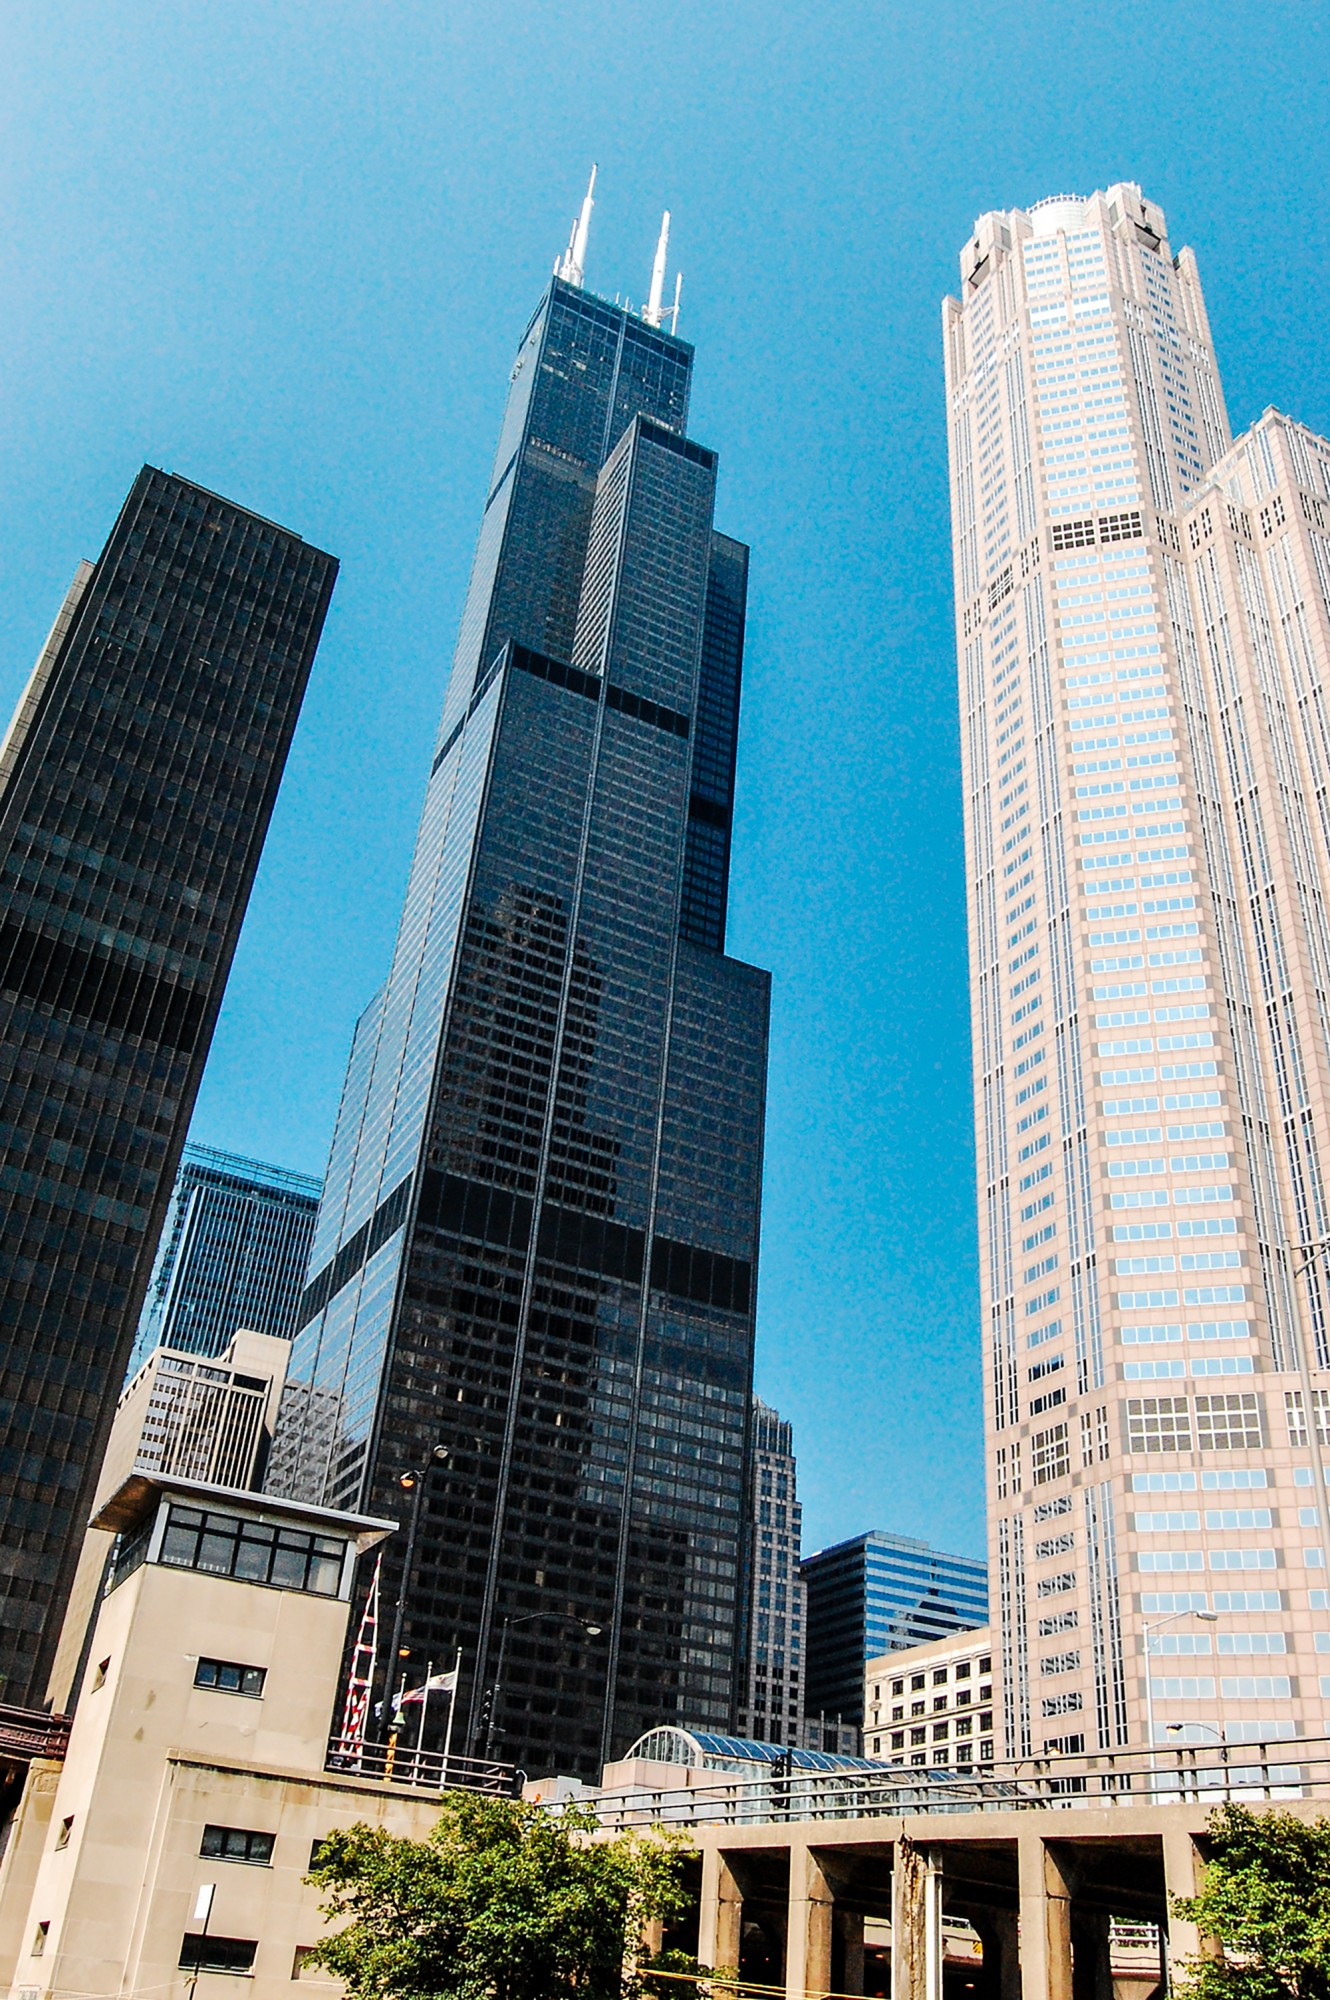 Images Of Willis Tower Willis Tower Buildings Of Chicago Chicago Architecture